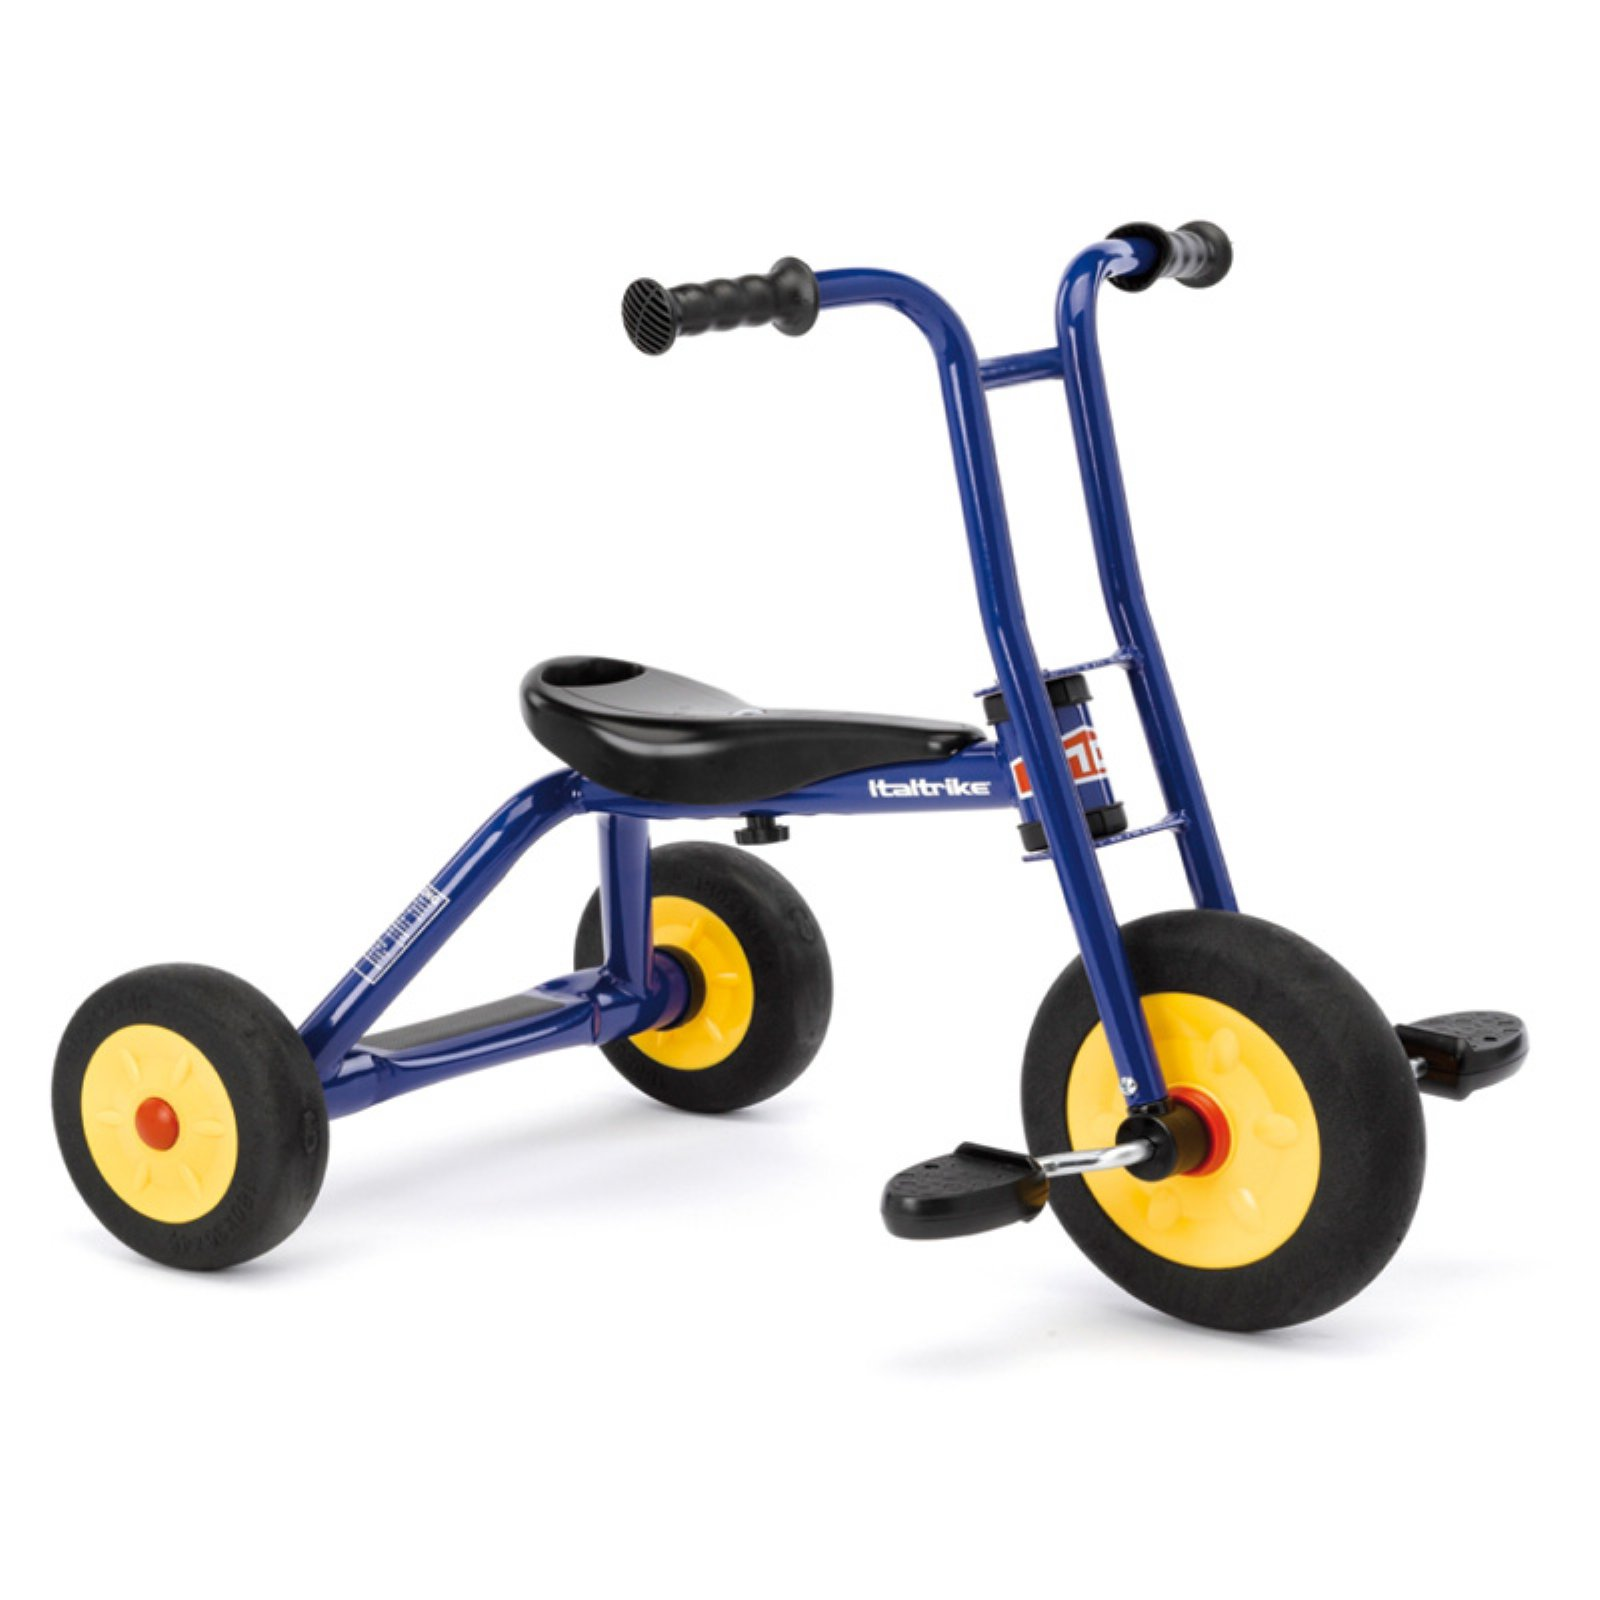 Italtrike 10 in. Atlantic Small Tricycle